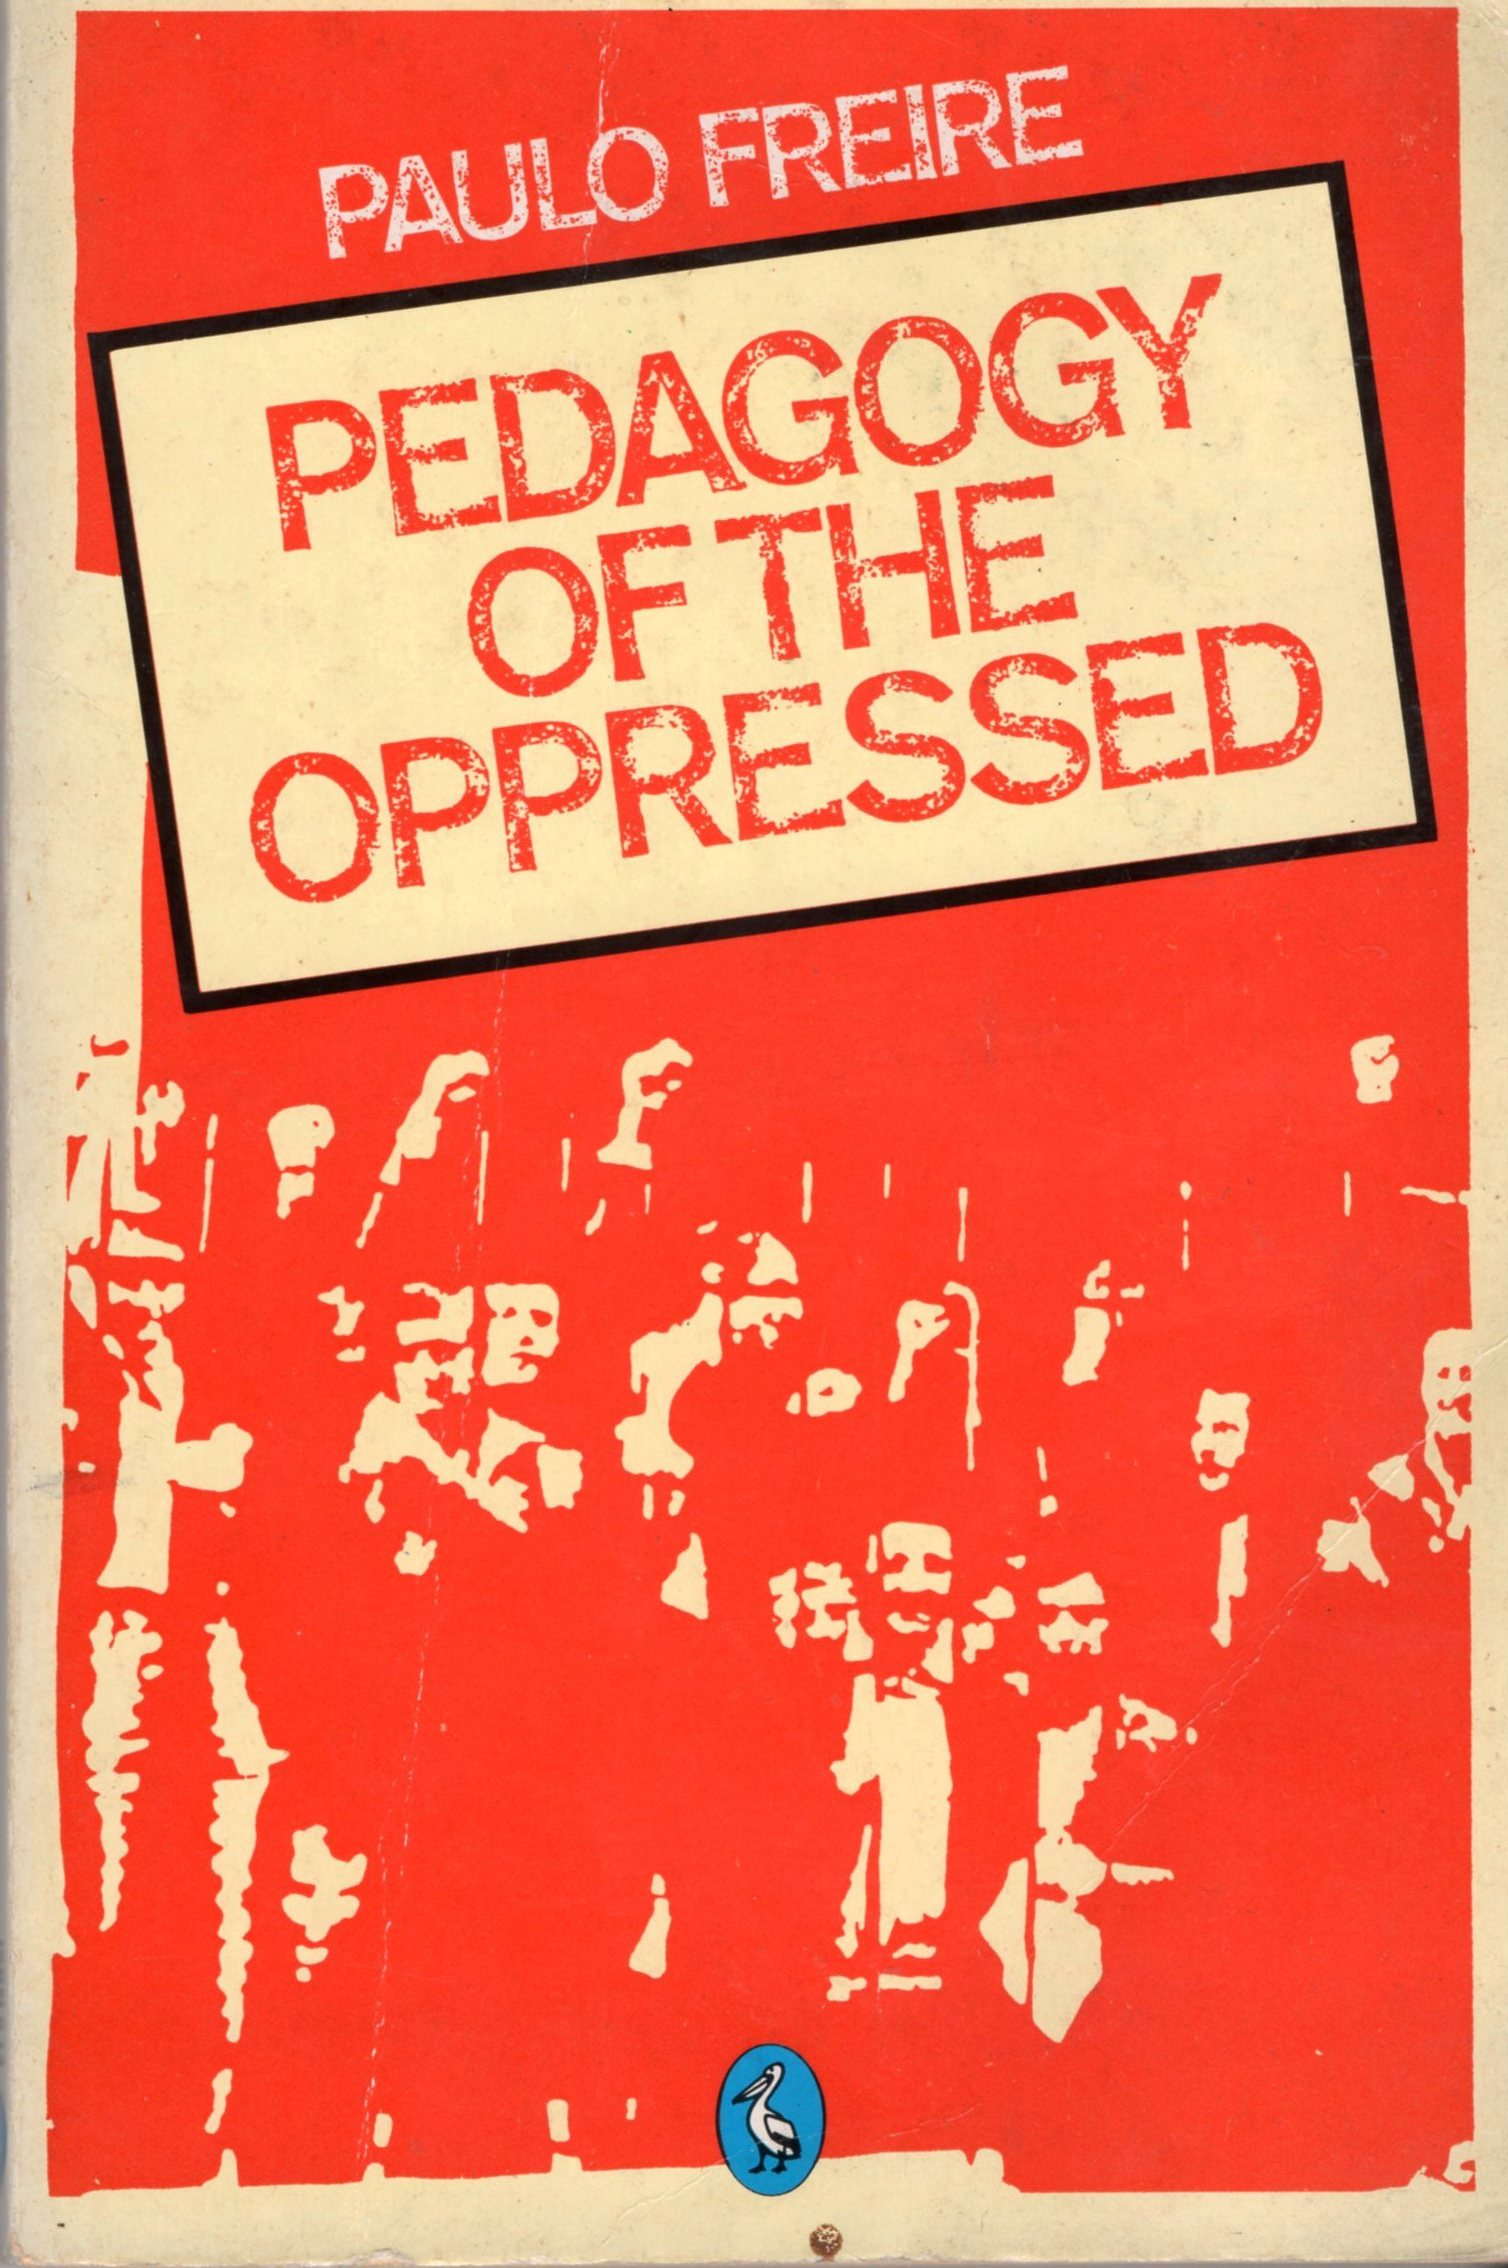 paulo freire pedagogy of the oppressed essays World — paulo freire (pedagogy of the oppressed) washing one's hands of the conflict between the powerful and the powerless means to side with the.